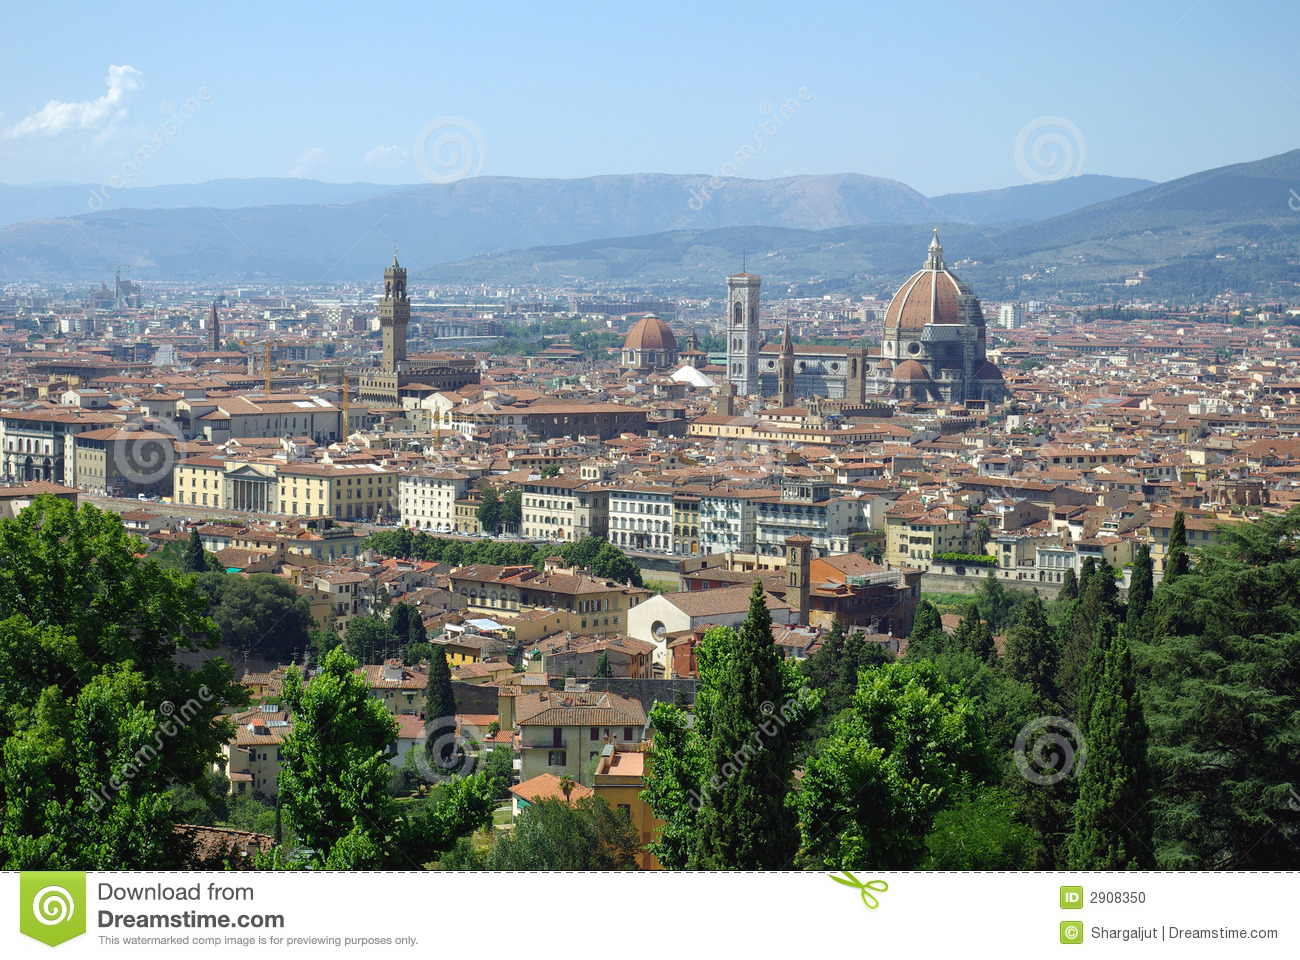 Florence tuscany italy royalty free stock image for Is florence in tuscany